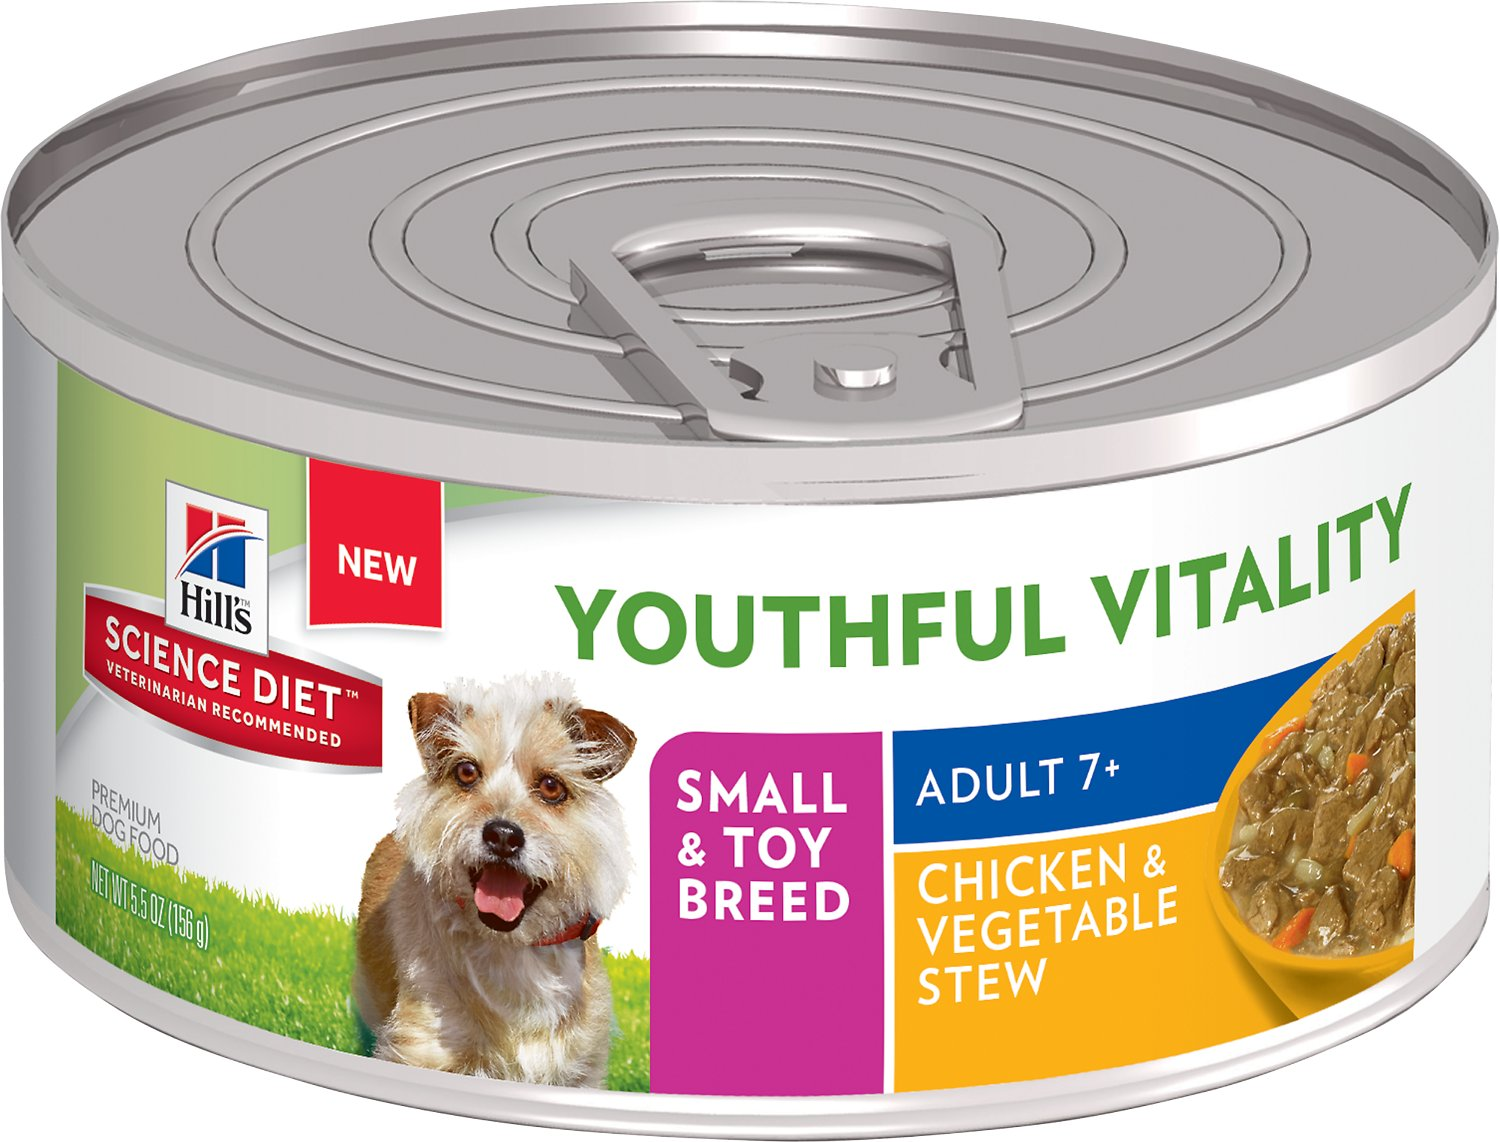 Hill's Science Diet Adult 7+ Small & Toy Breed Youthful Vitality Chicken & Vegetable Stew Canned Dog Food, 5.5-oz